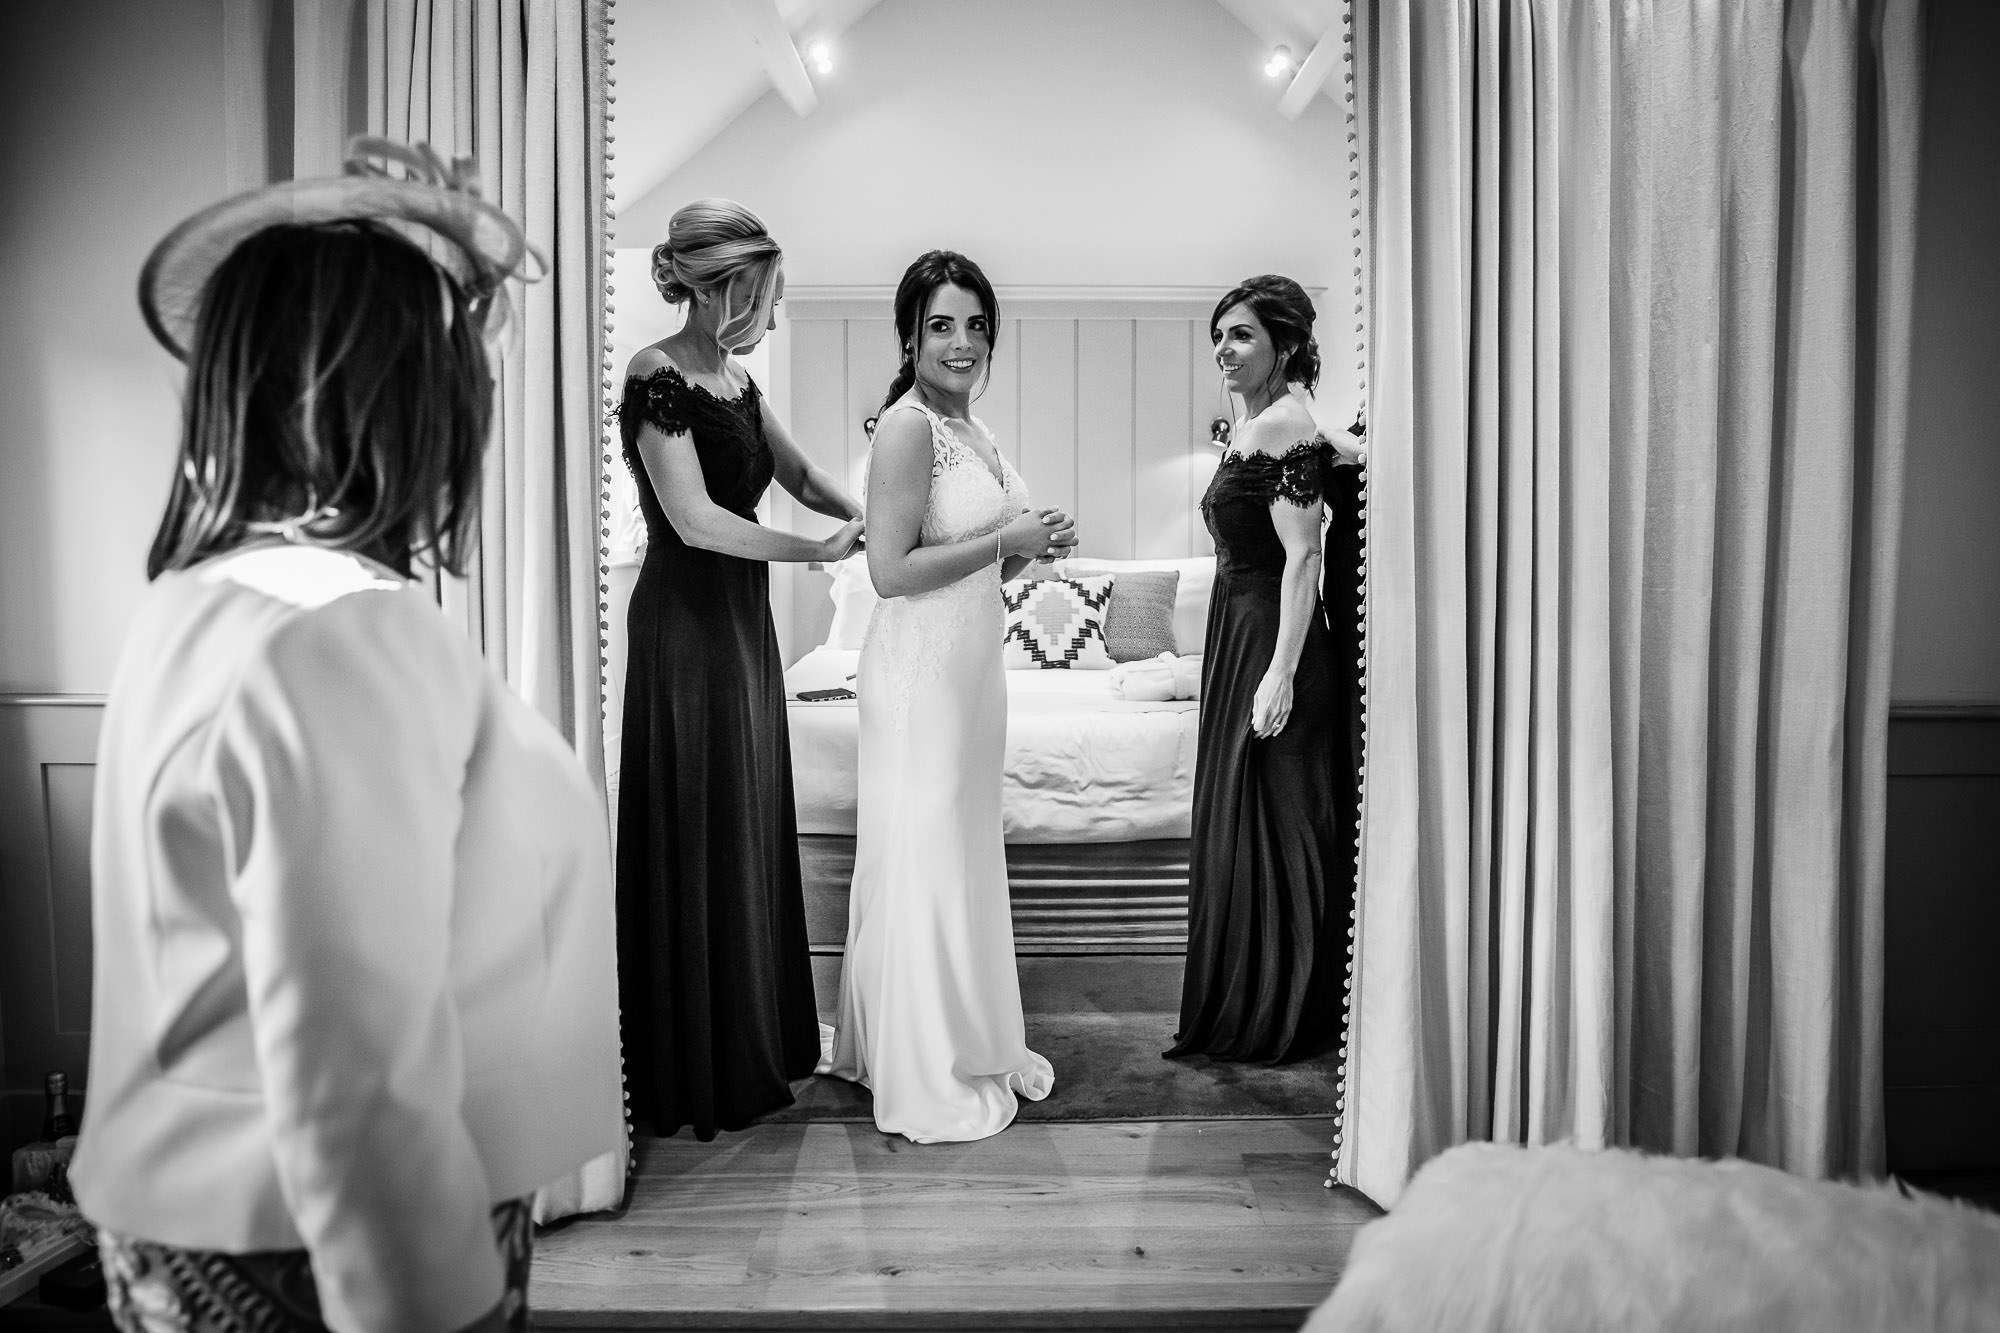 Bride getting into wedding dress, Bridal Prep - Farbridge Wedding